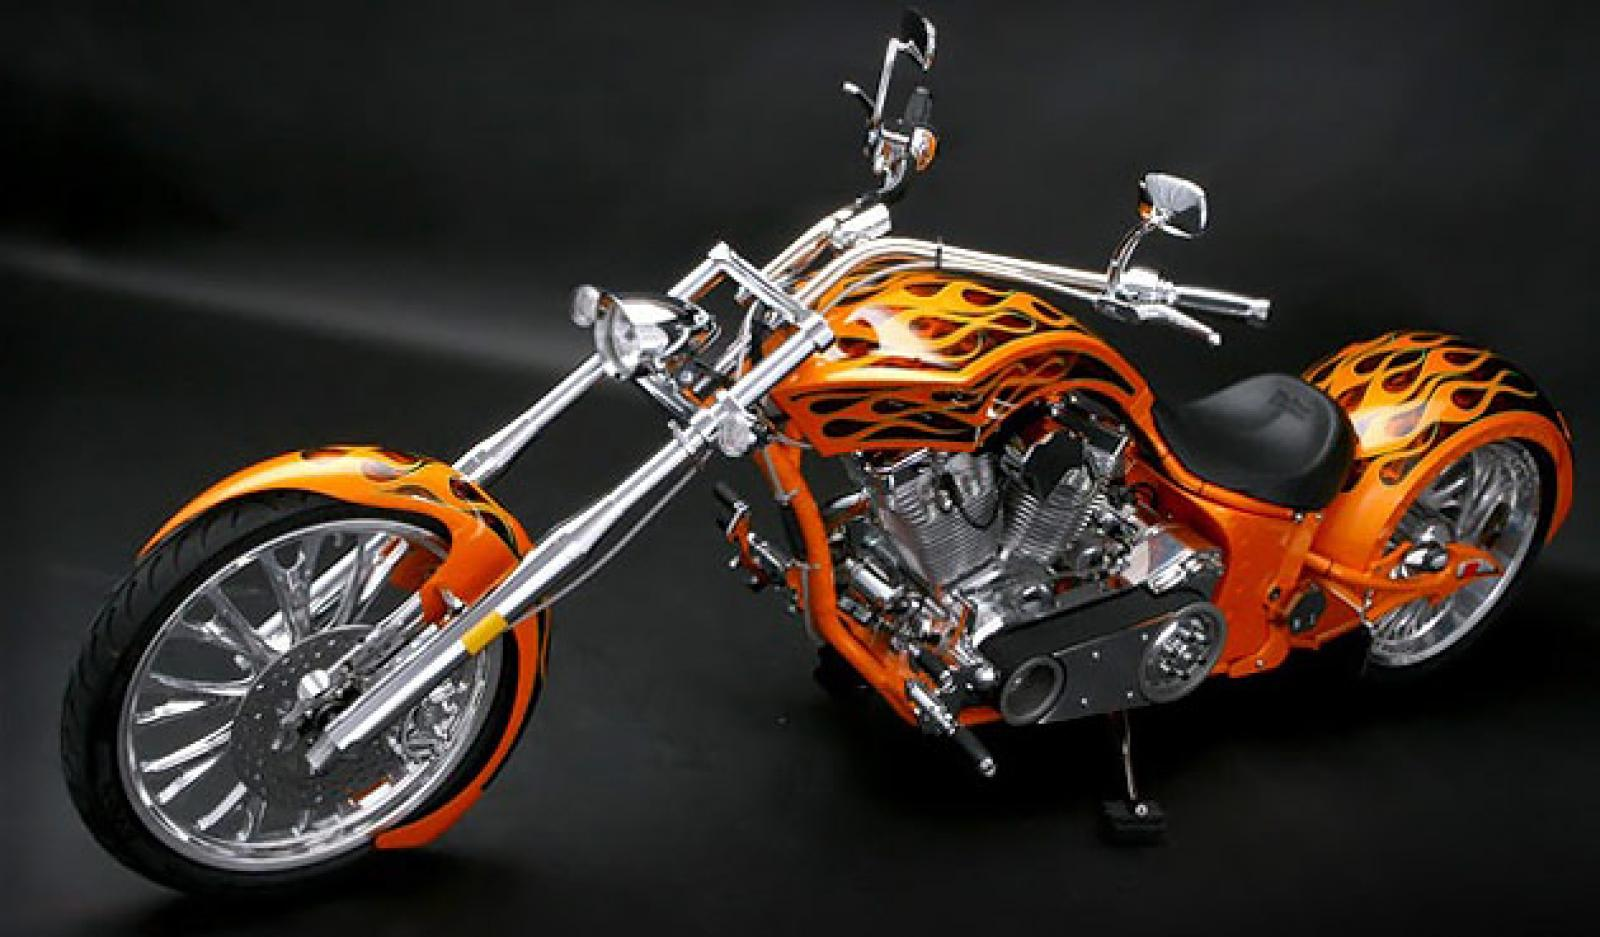 Big Bear Choppers Merc Softail 100 Smooth Carb images #63775